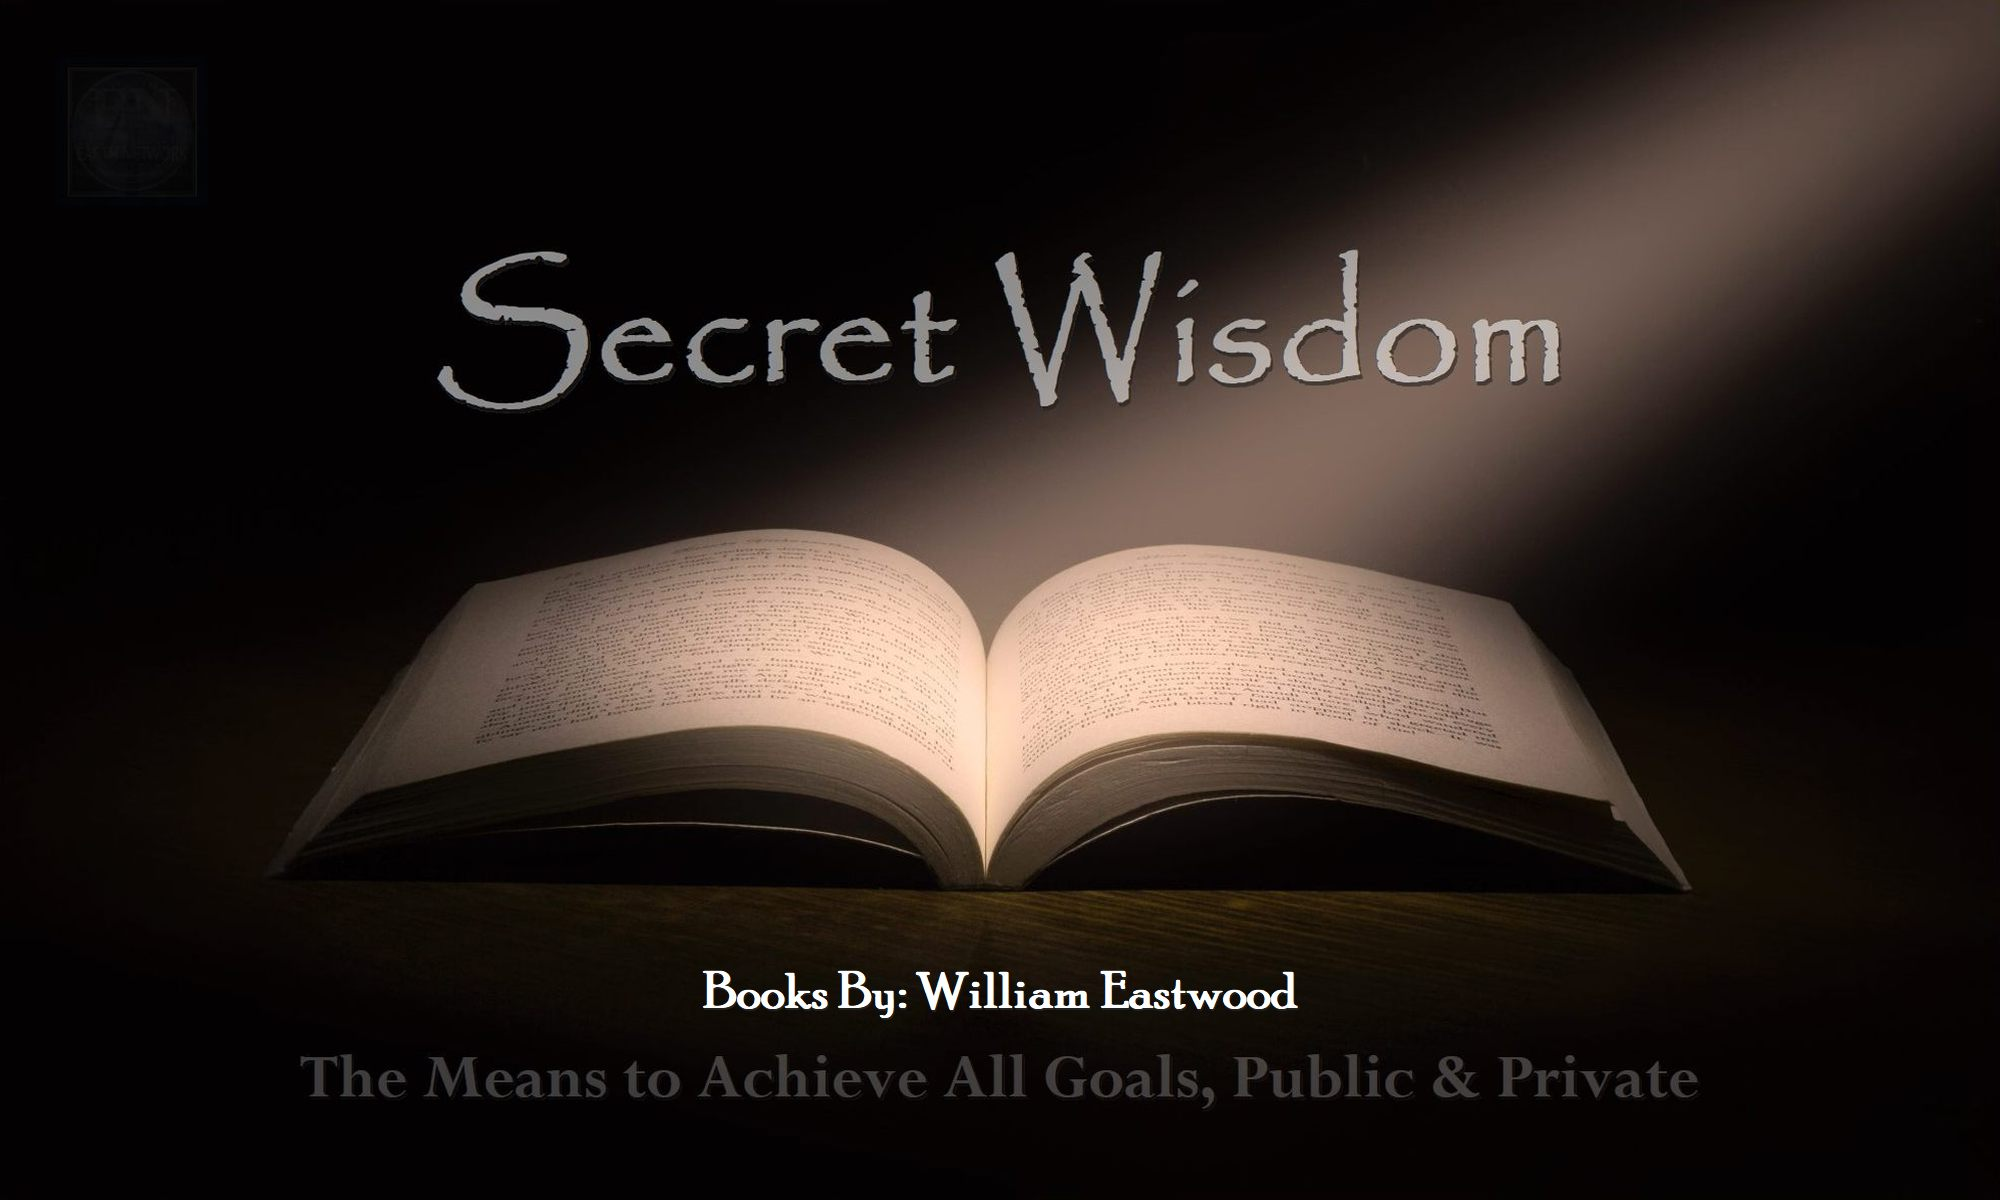 Magic book shows how to solve all problems and achieve any goal